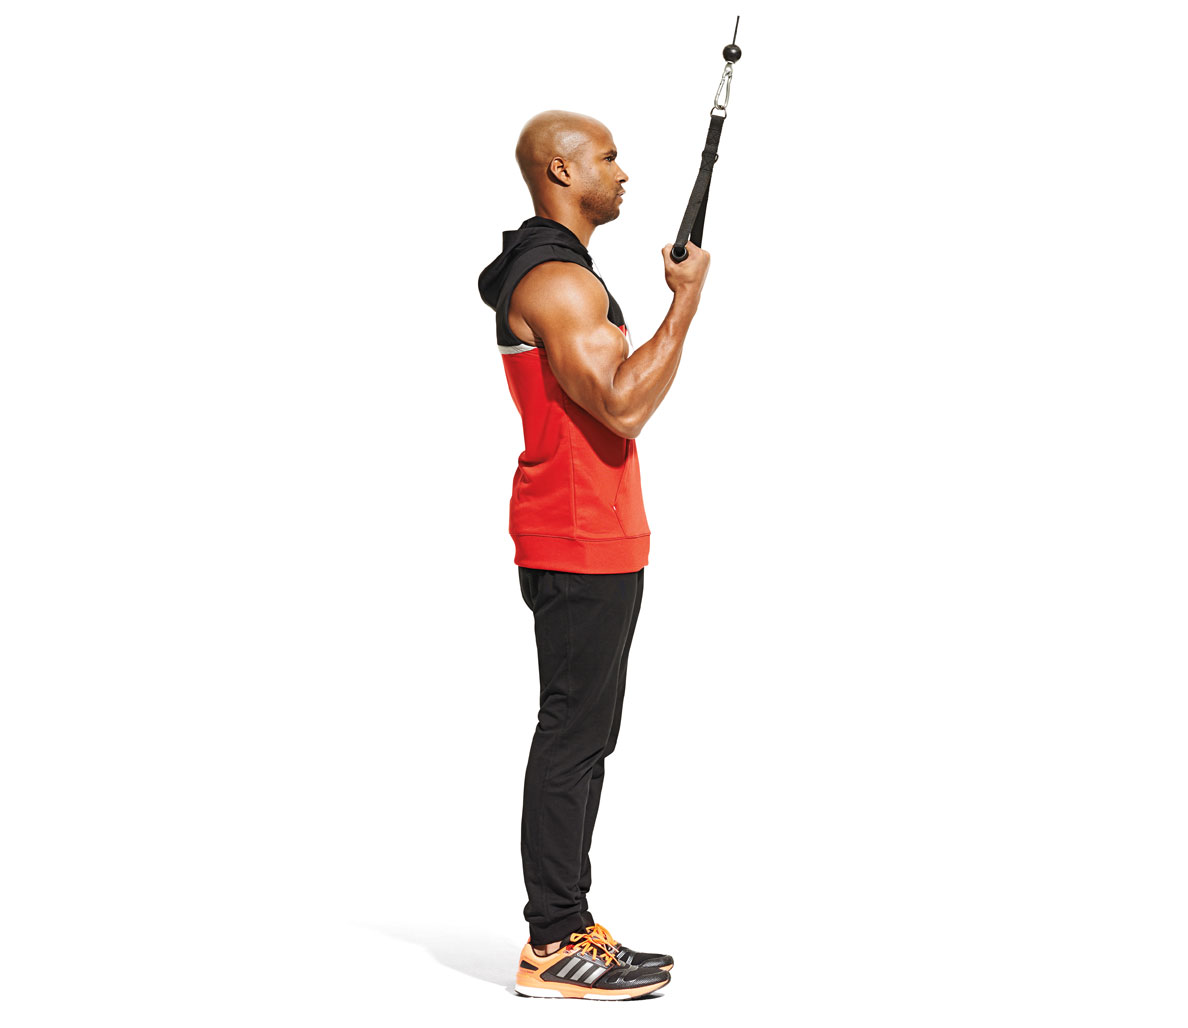 Get Big Arms With Triceps And Biceps Exercises